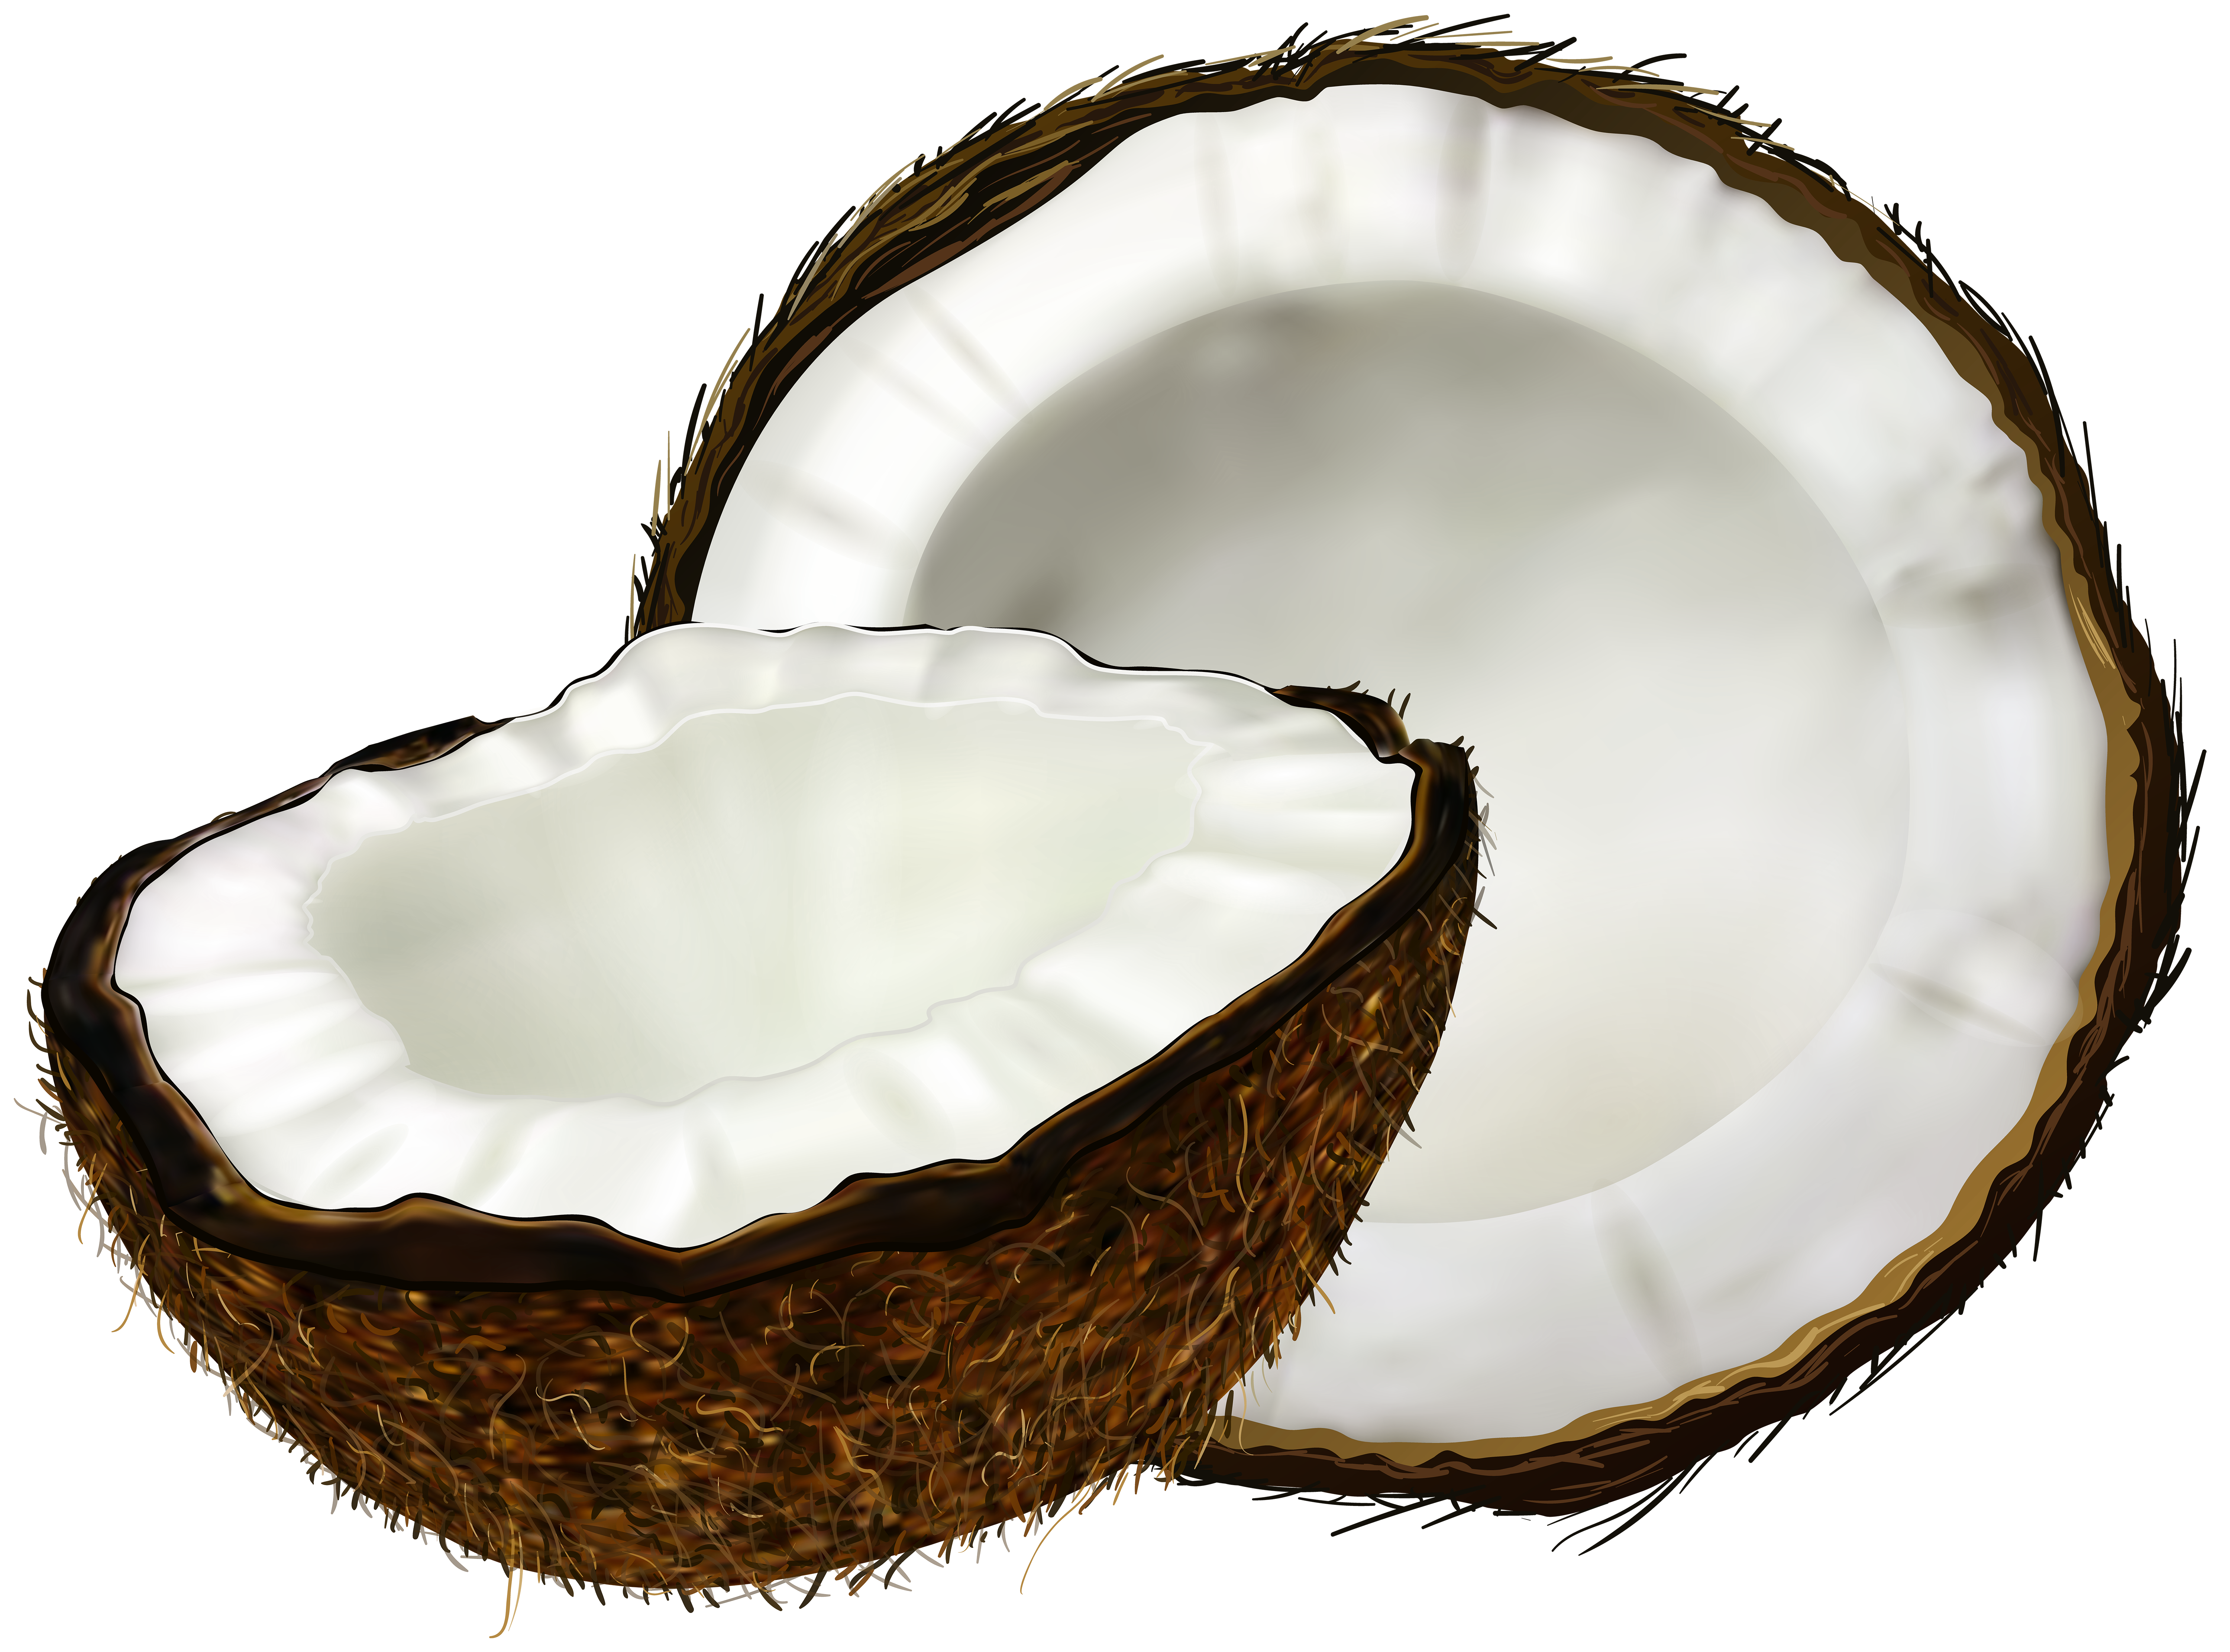 banner library Clip art image gallery. Transparent coconut.